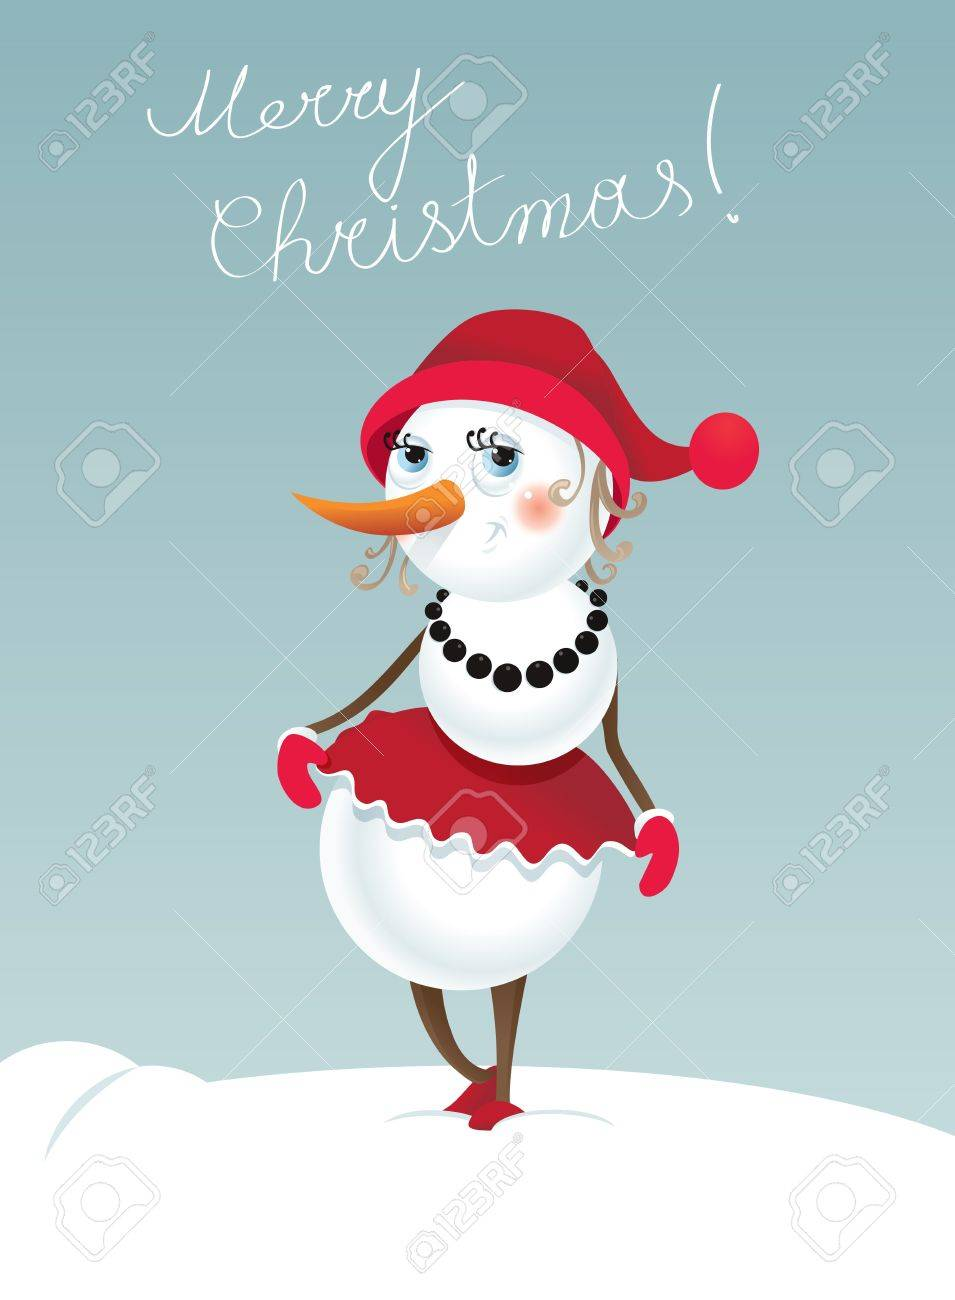 Christmas background with snowman-girl   Contains transparent objects used for shadows Stock Vector - 16953444